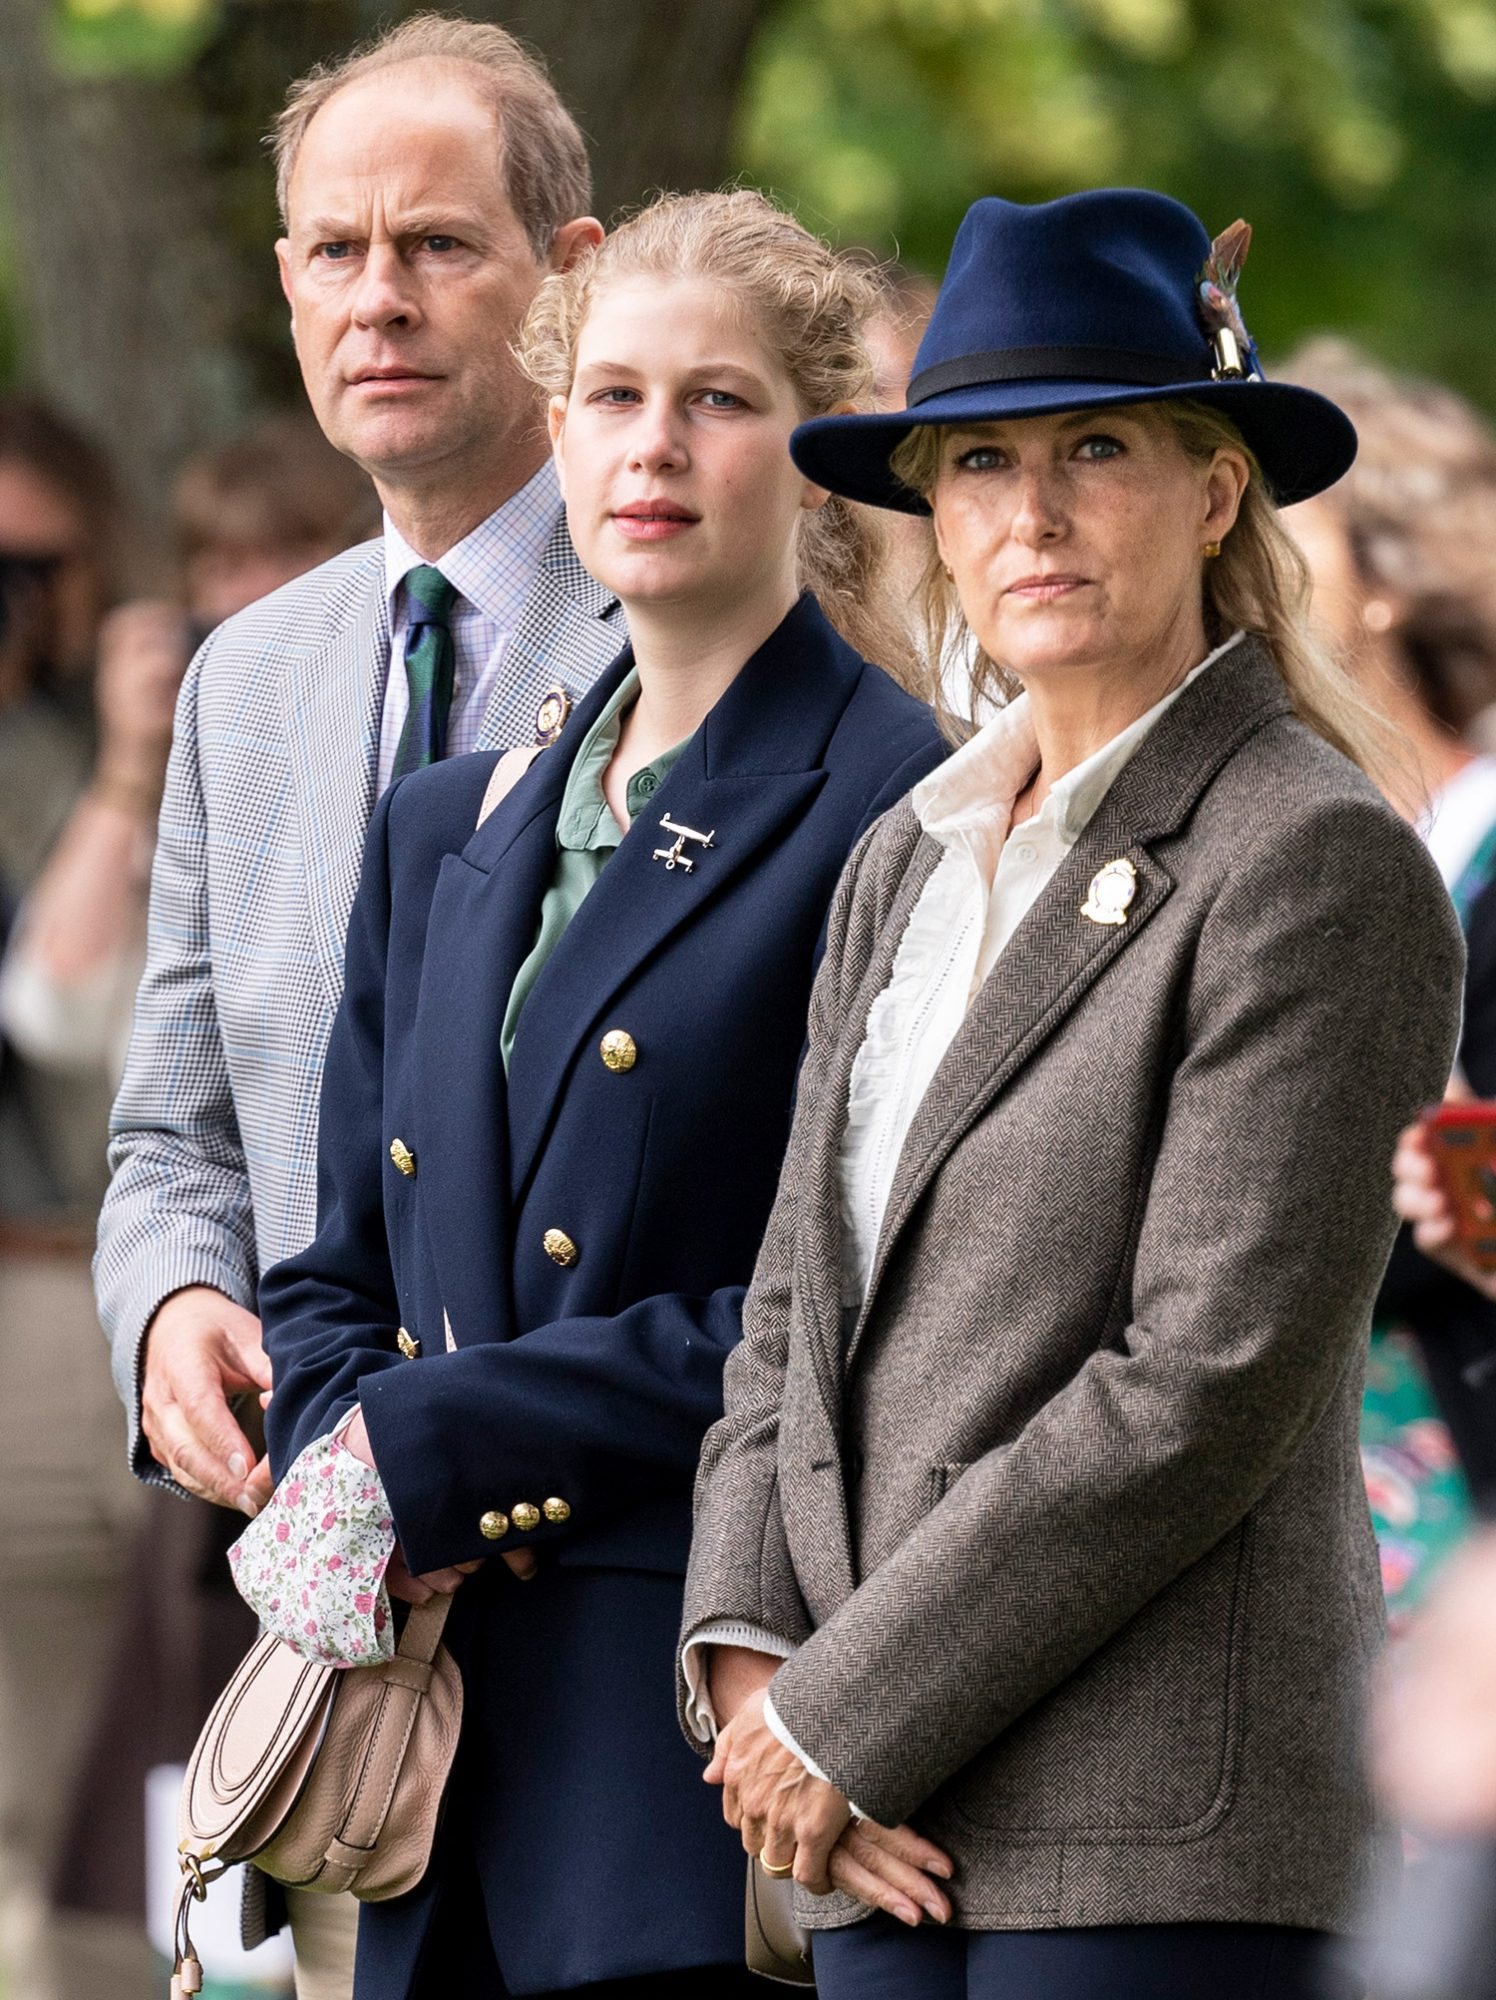 Prince Edward, Earl of Wessex and Sophie, Countess of Wessex with Lady Louise Windsor watch the Carriage Driving during the Royal Windsor Horse Show 2021 at Windsor Castle on July 3, 2021 in Windsor, England.